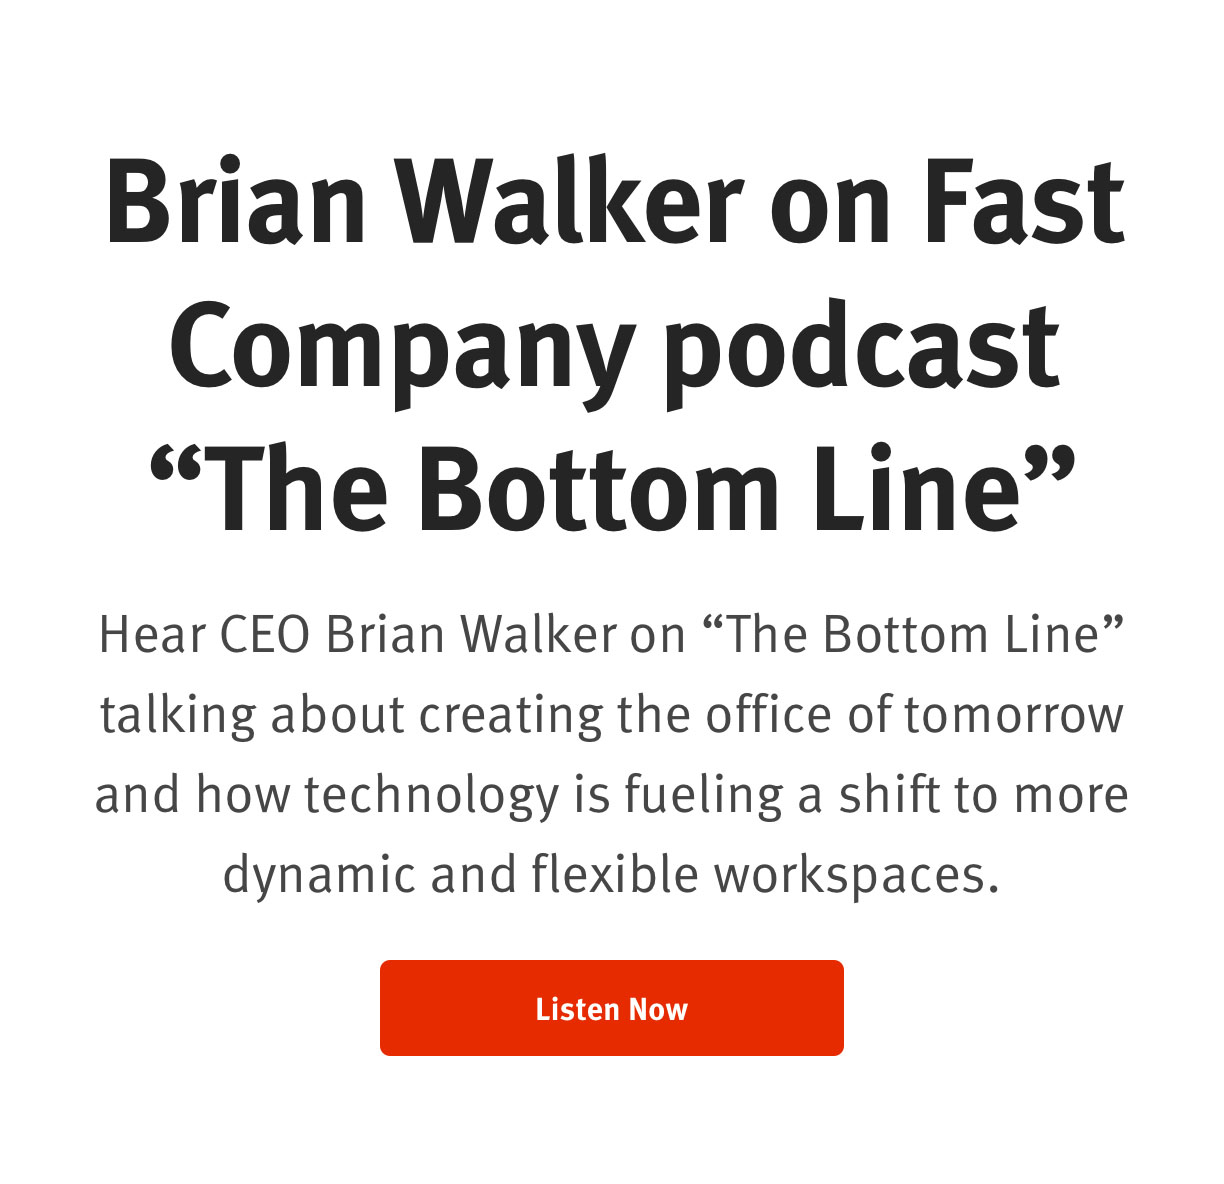 """CEO Brian Walker on Fast Company podcast """"The Bottom Line"""" Hear CEO Brian Walker on """"The Bottom Line"""" talking about creating the office of tomorrow and how technology is fueling a shift to more dynamic and flexible workspaces. Listen Now"""